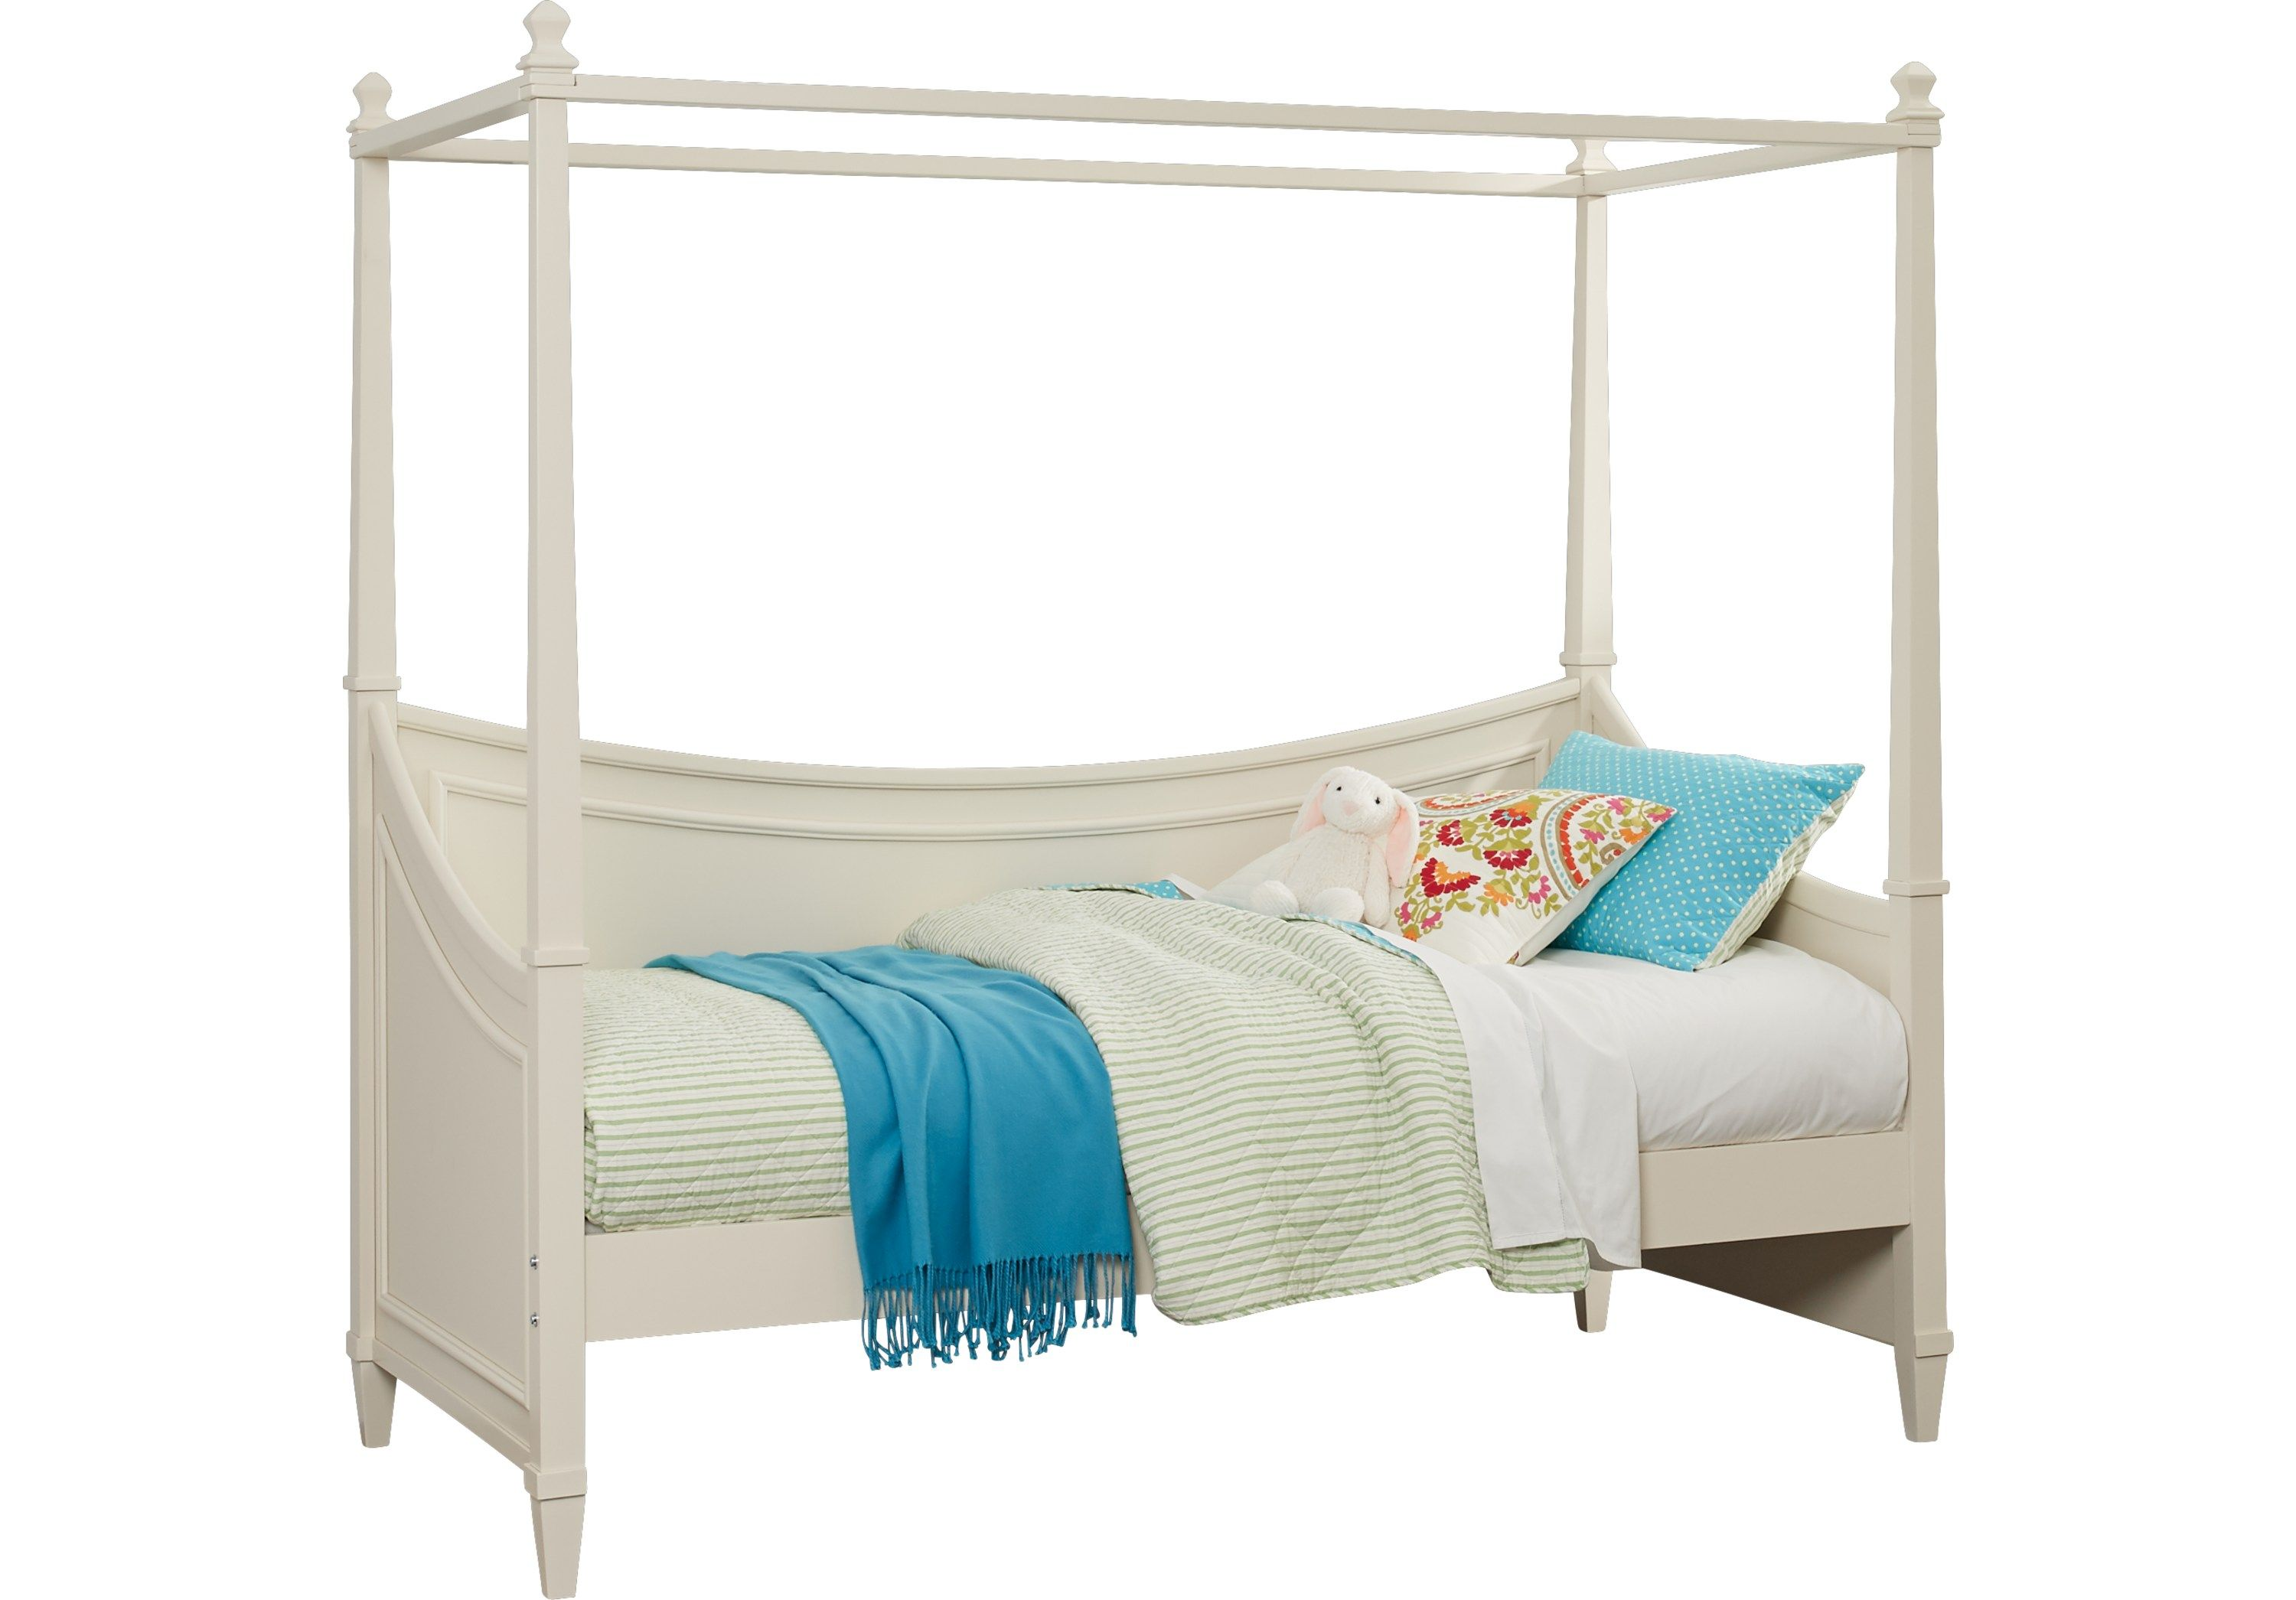 Jaclyn Place Ivory 2 Pc Canopy Daybed Daybeds Light Wood